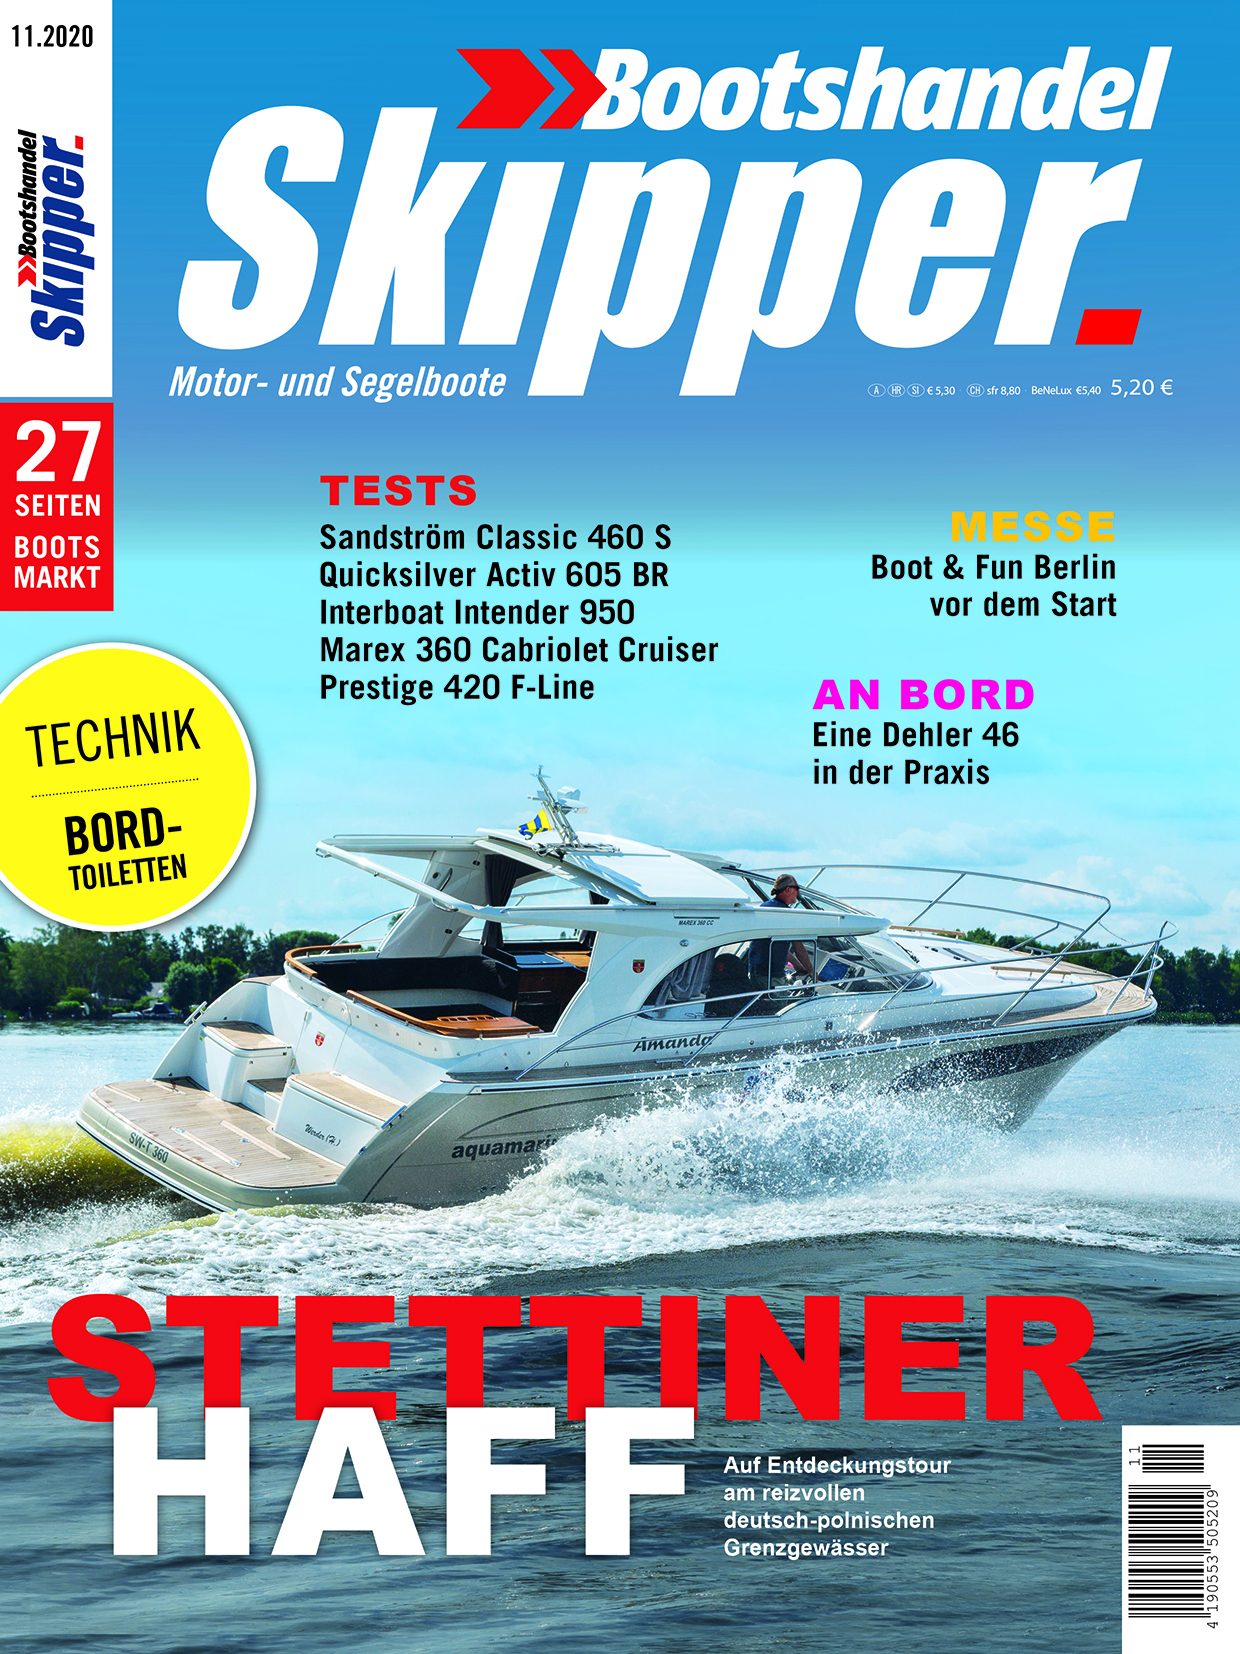 SKIPPER_11_2020_Cover_595x794